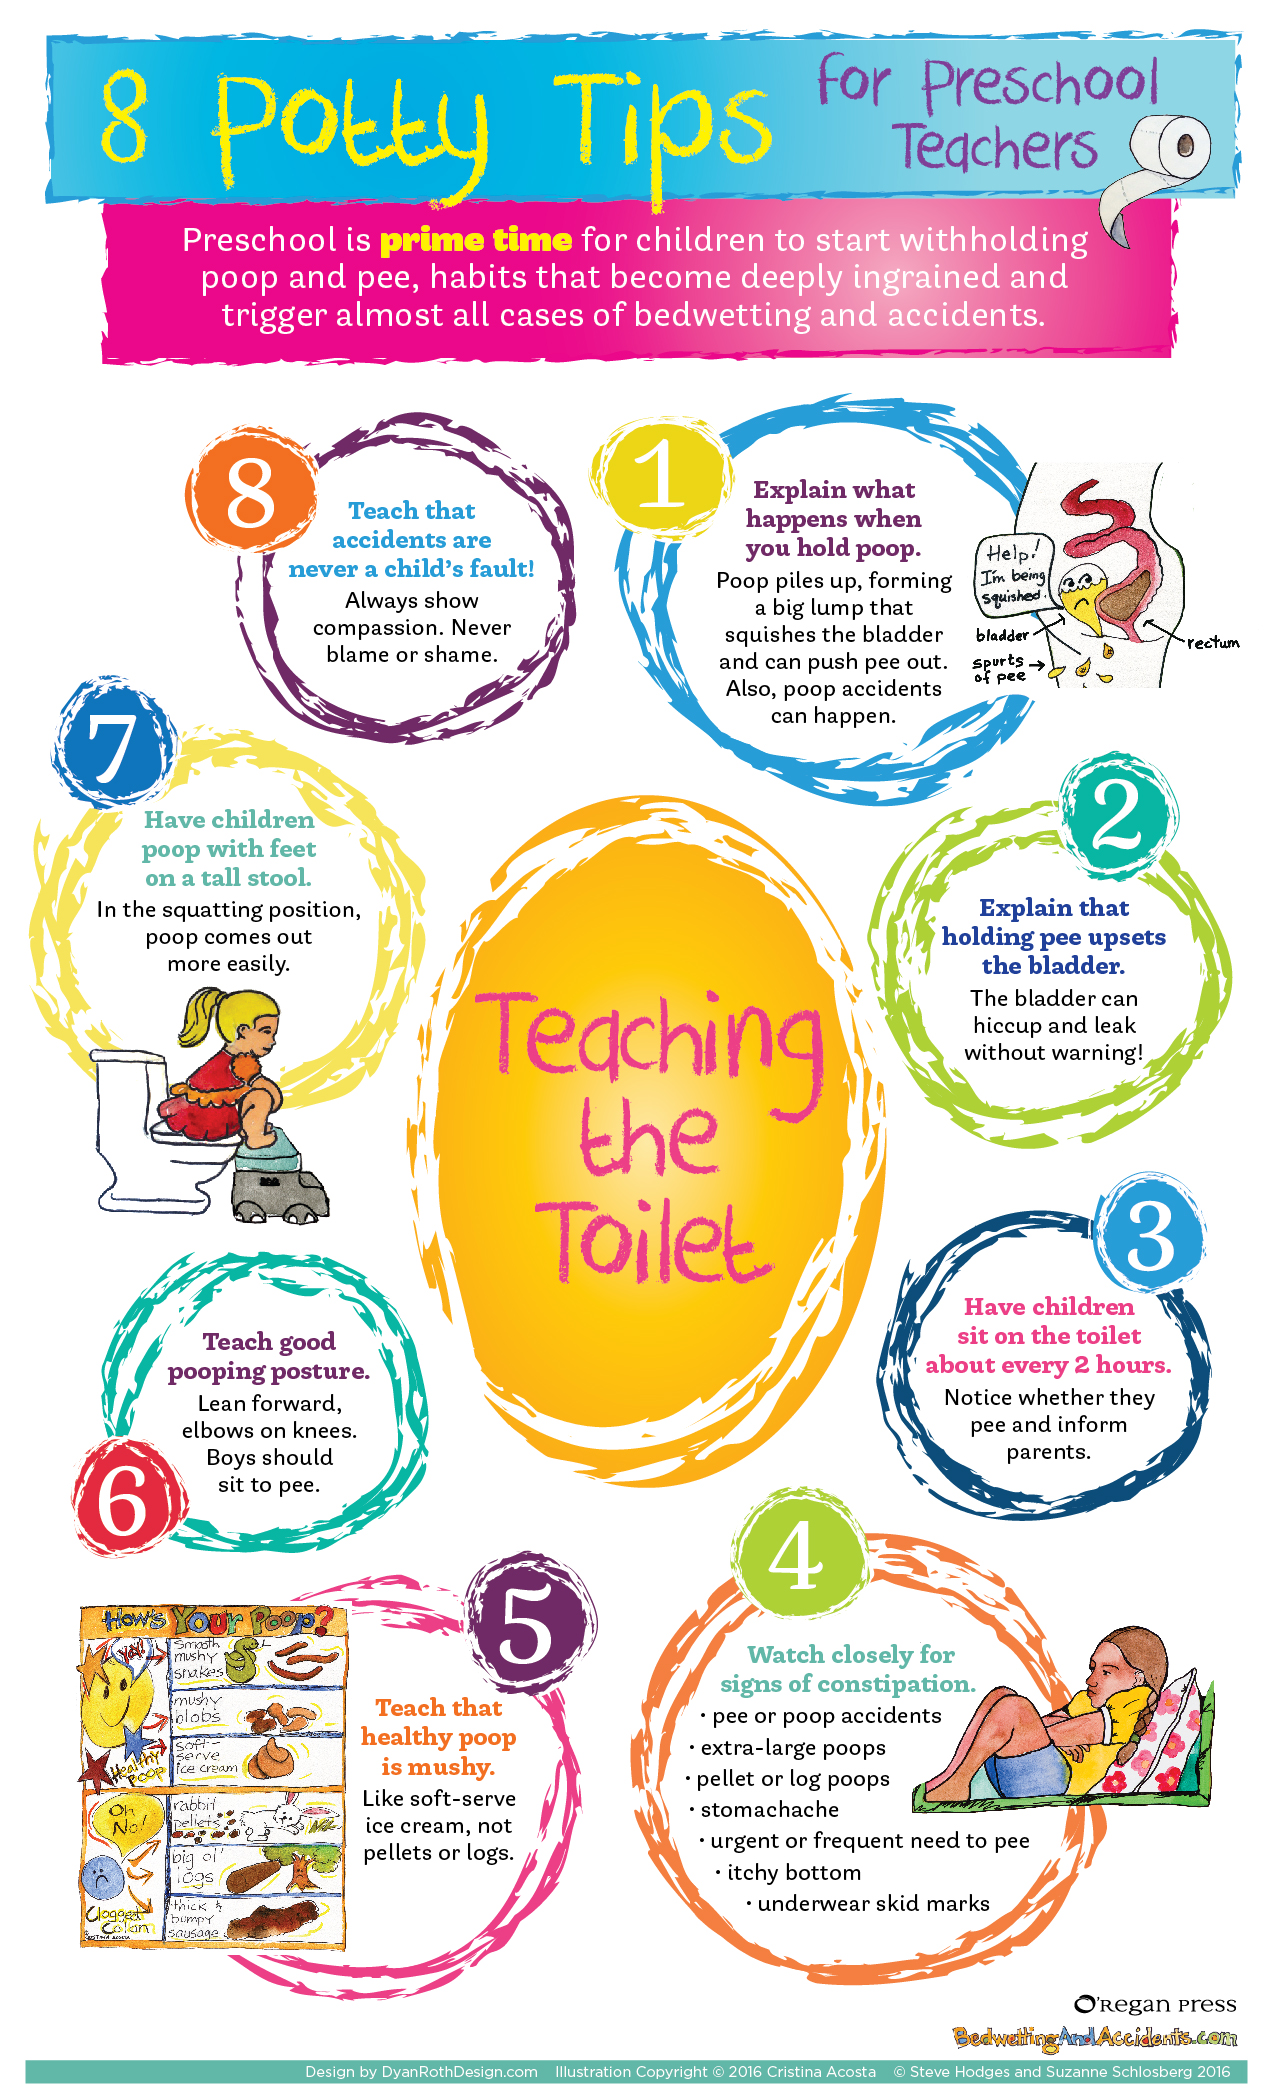 preschool toilet teacher teaching the toilet overlooked potty tips for preschool teachers home dr hodges bedwetting and accidents resources parents